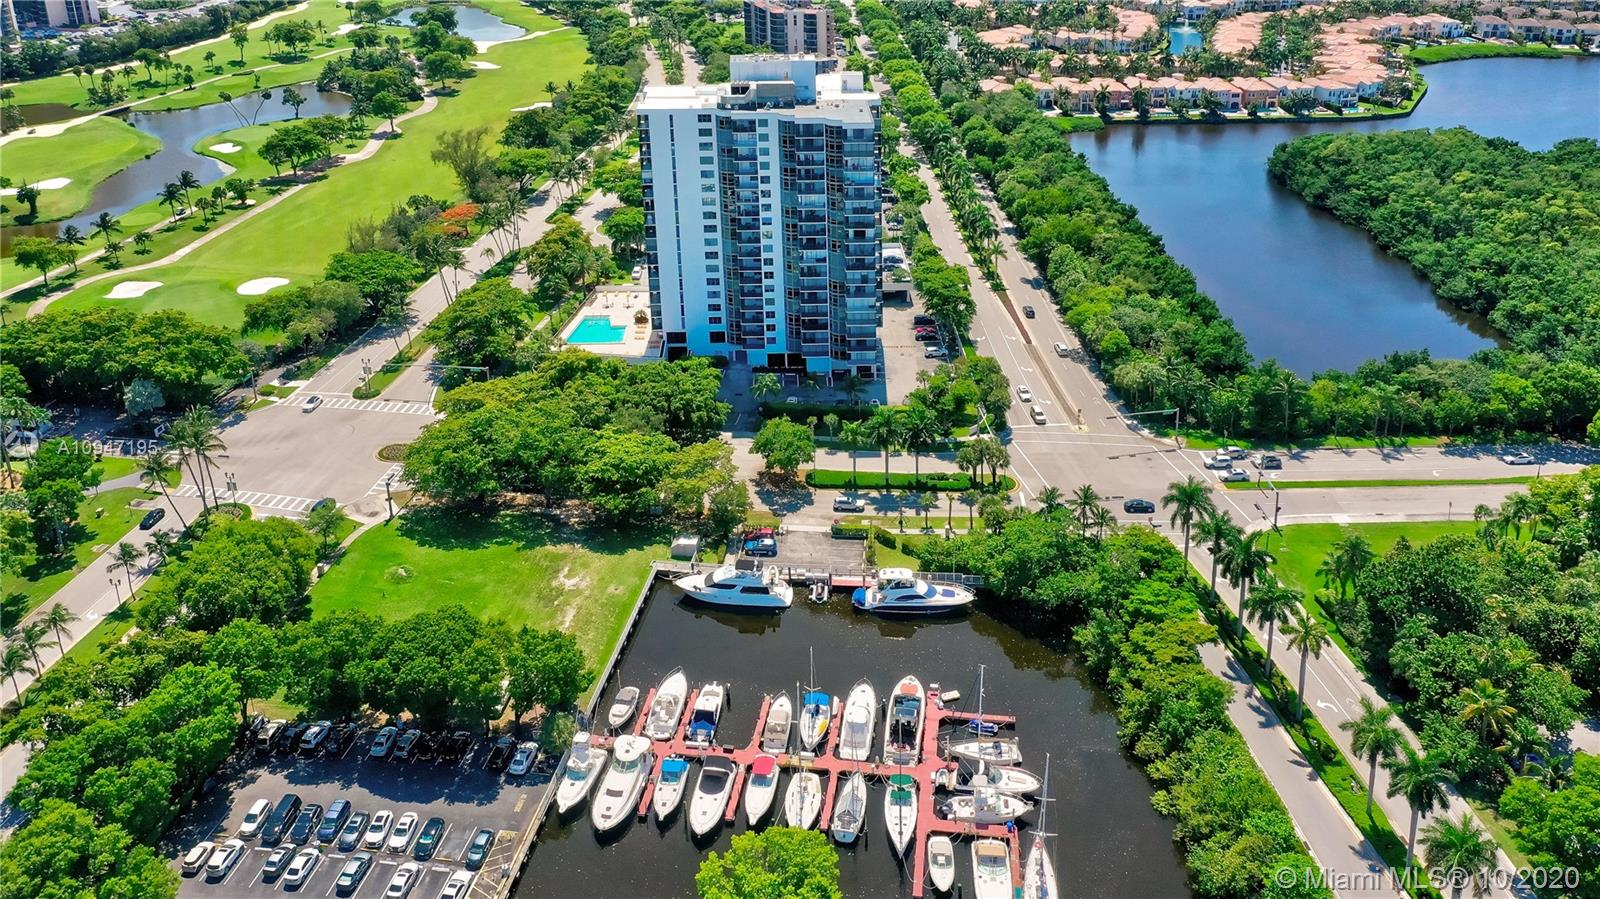 3375 N Country Club Dr #1203 For Sale A10947195, FL